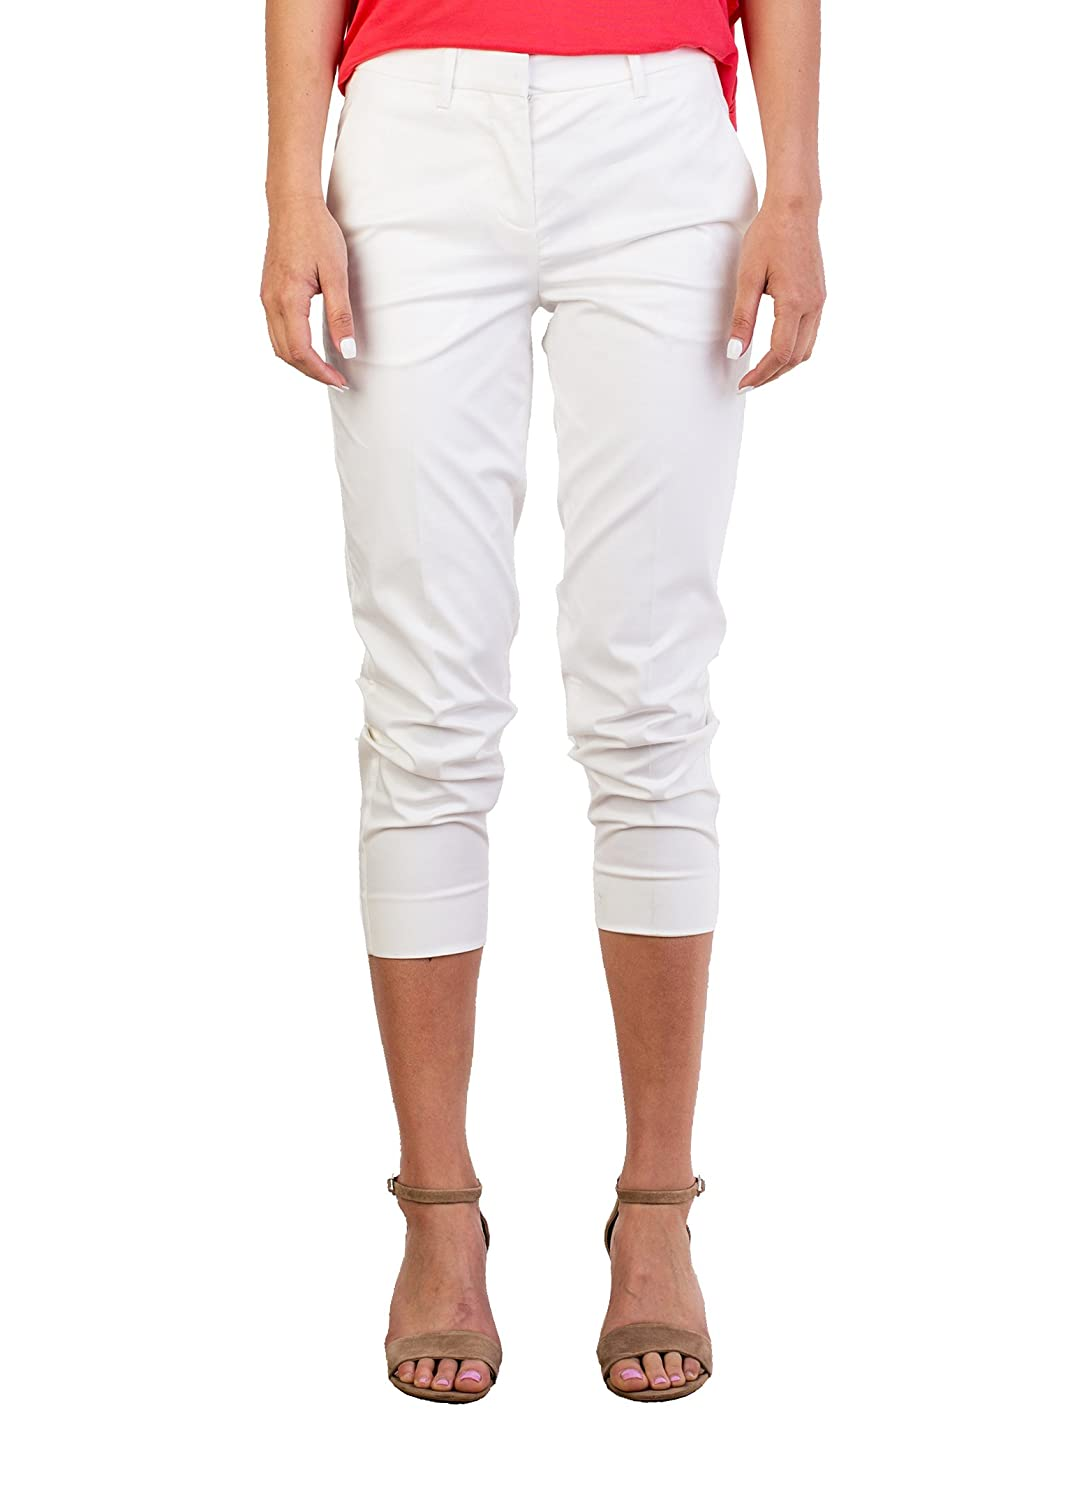 MIU MIU Women's Cotton Trouser Pants Cream White